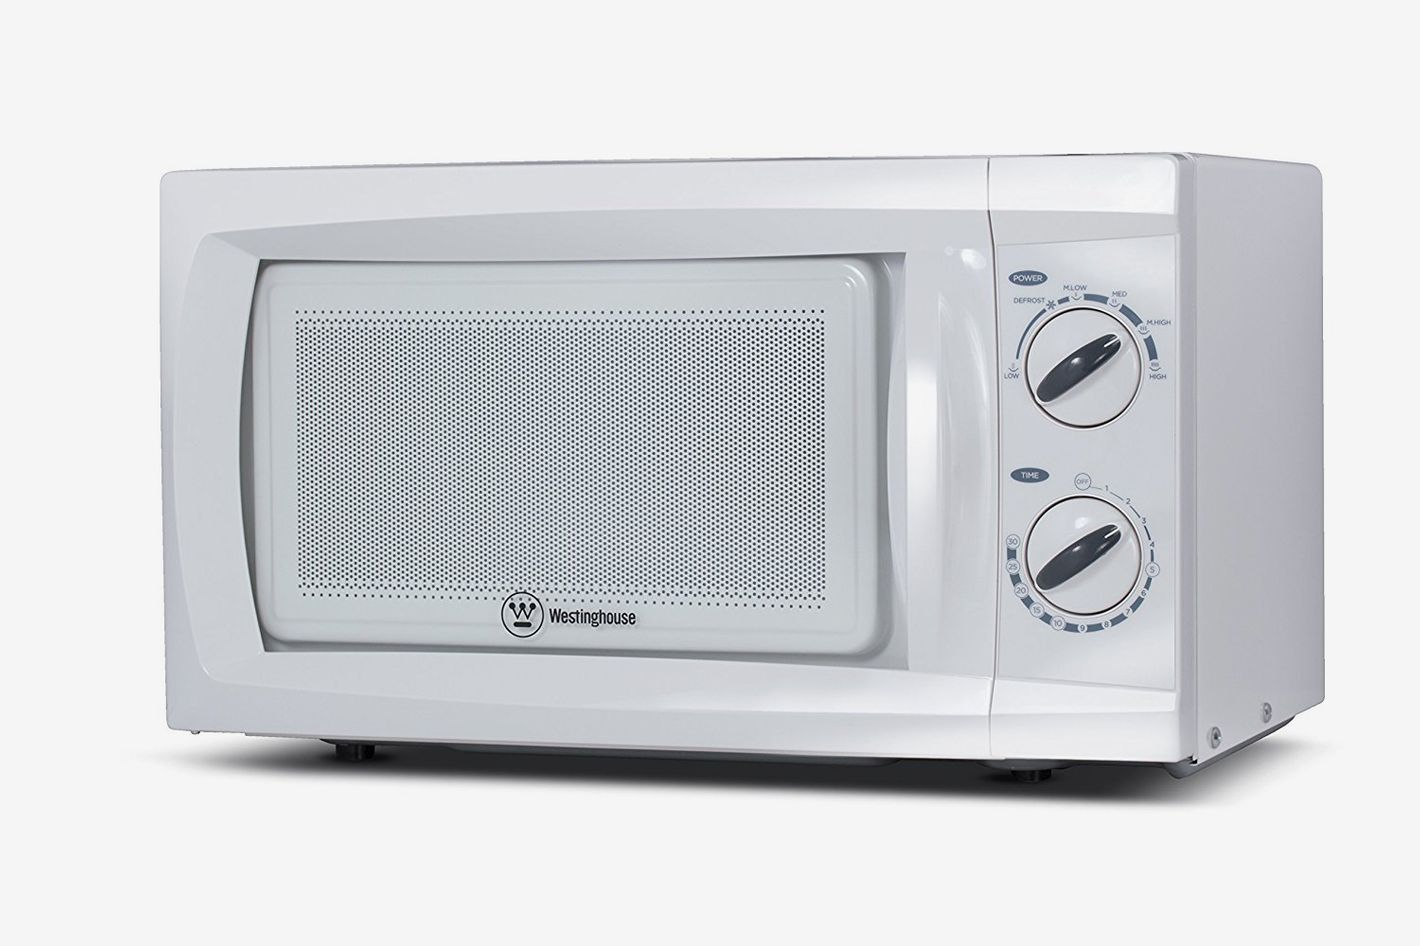 Westinghouse Wcm660w 600 Watt Counter Top Rotary Microwave Oven